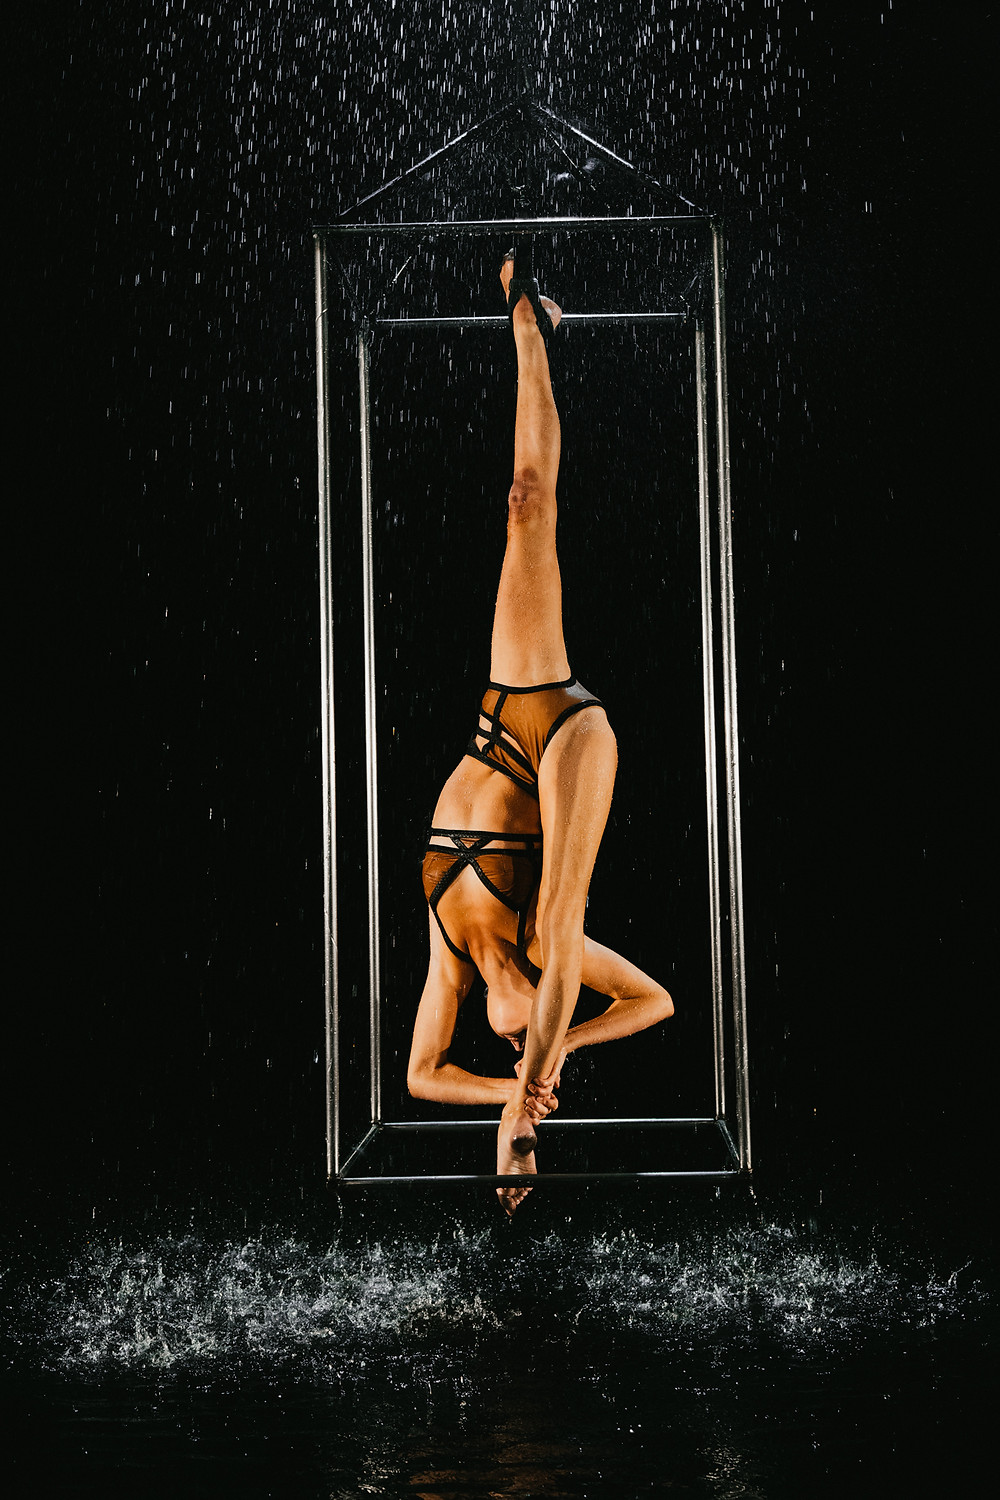 cirque du soliel performed hangs upside down doing the splits captured by Las Vegas videographer hayway films